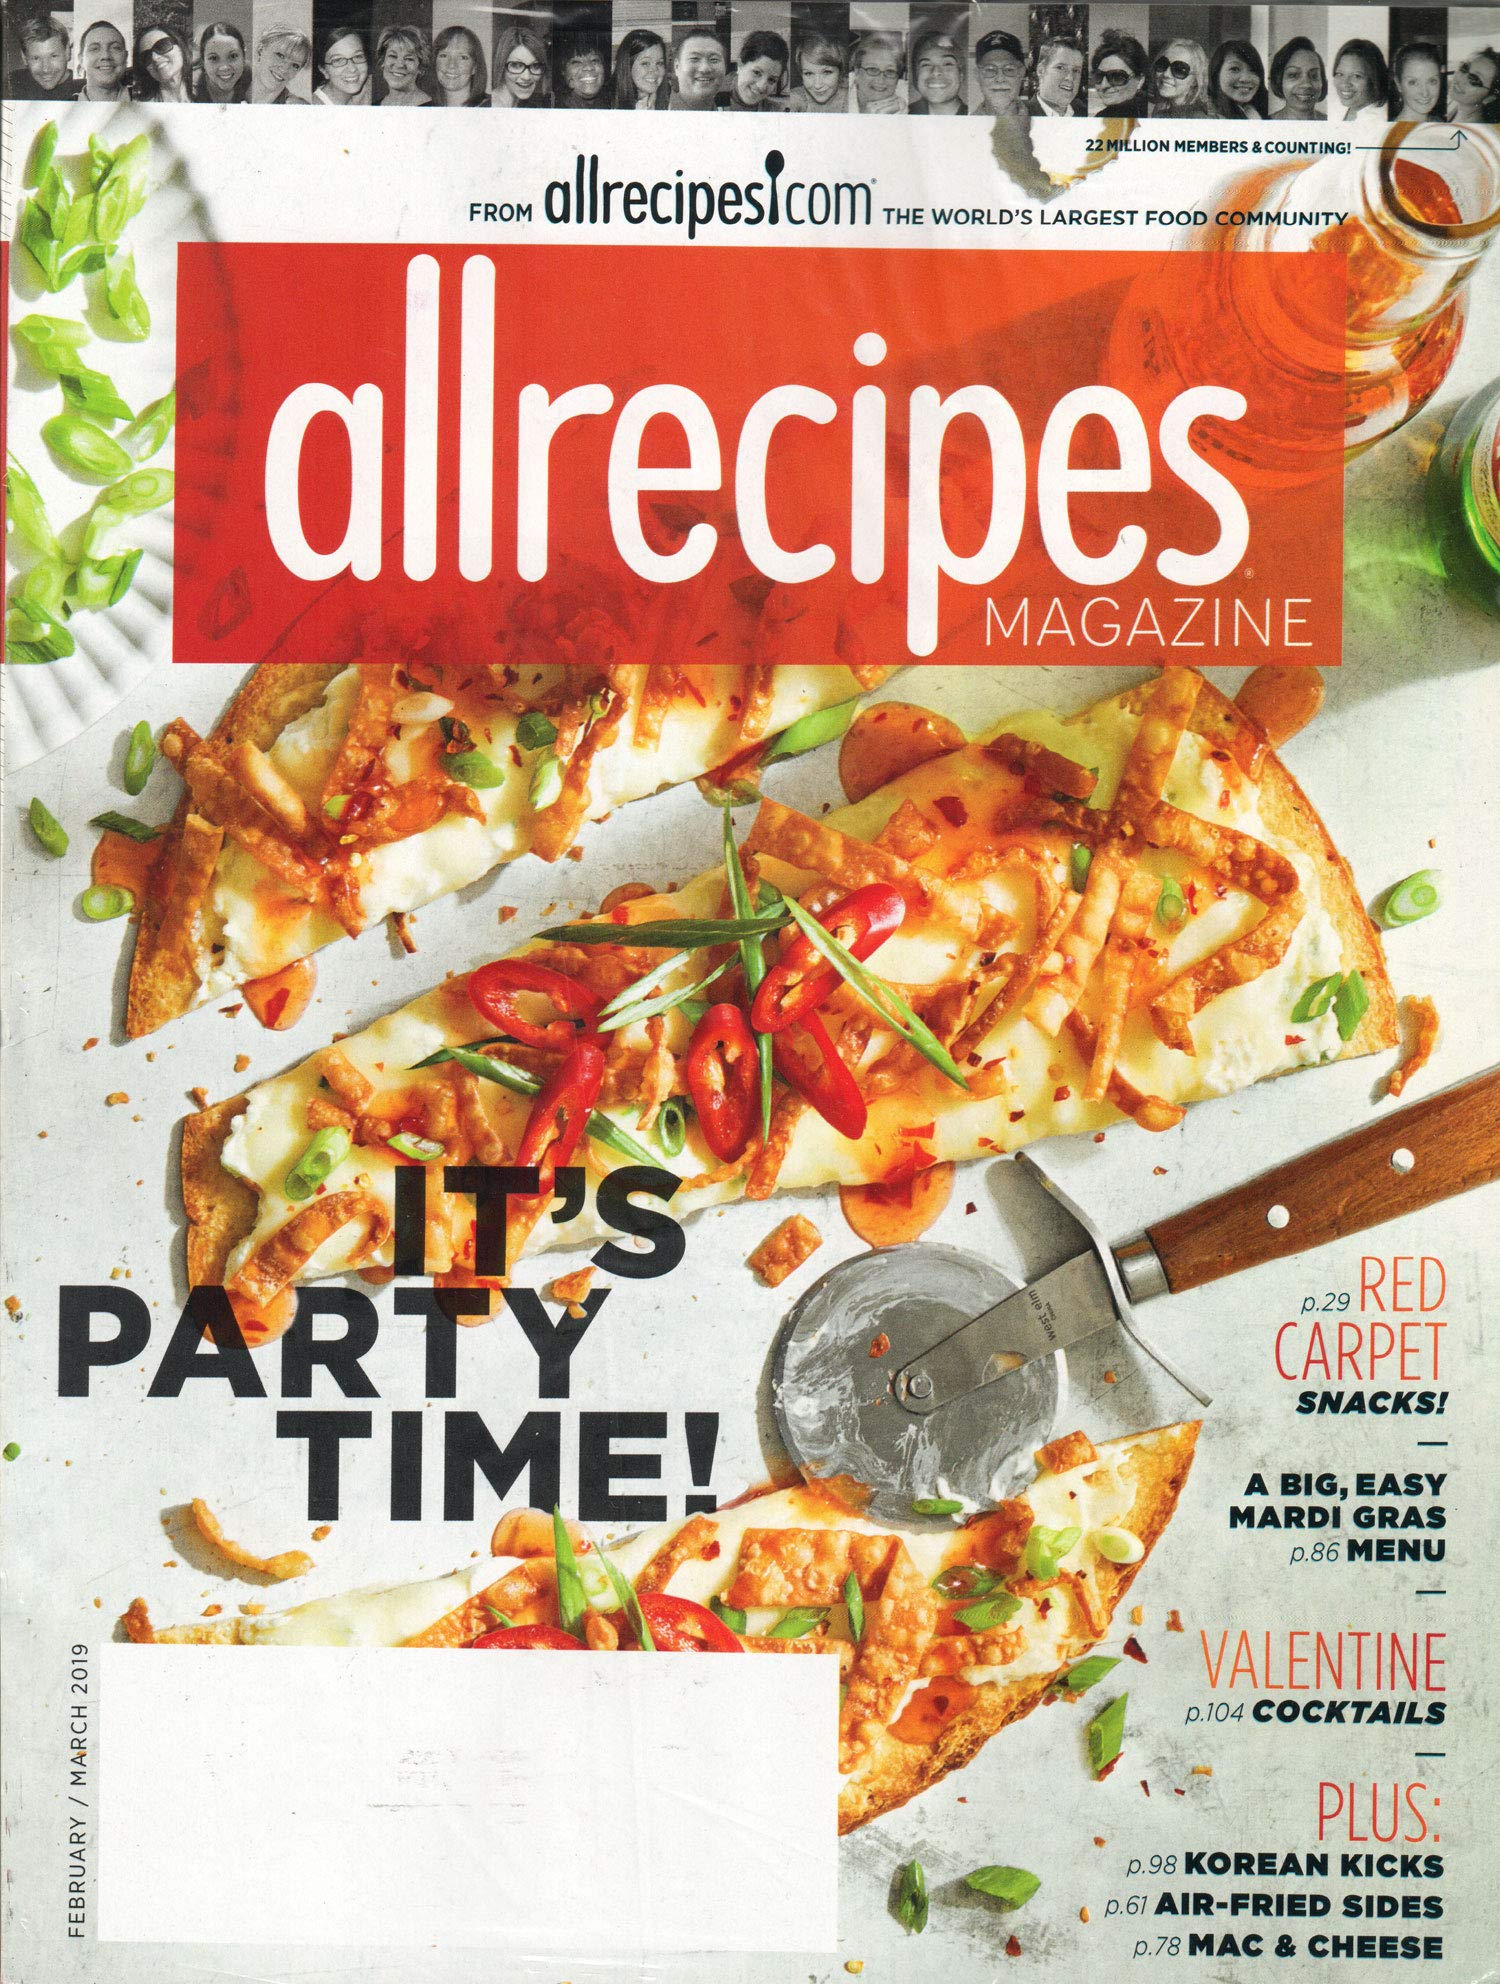 Allrecipes Magazine February/March 2019 | It's Party Time